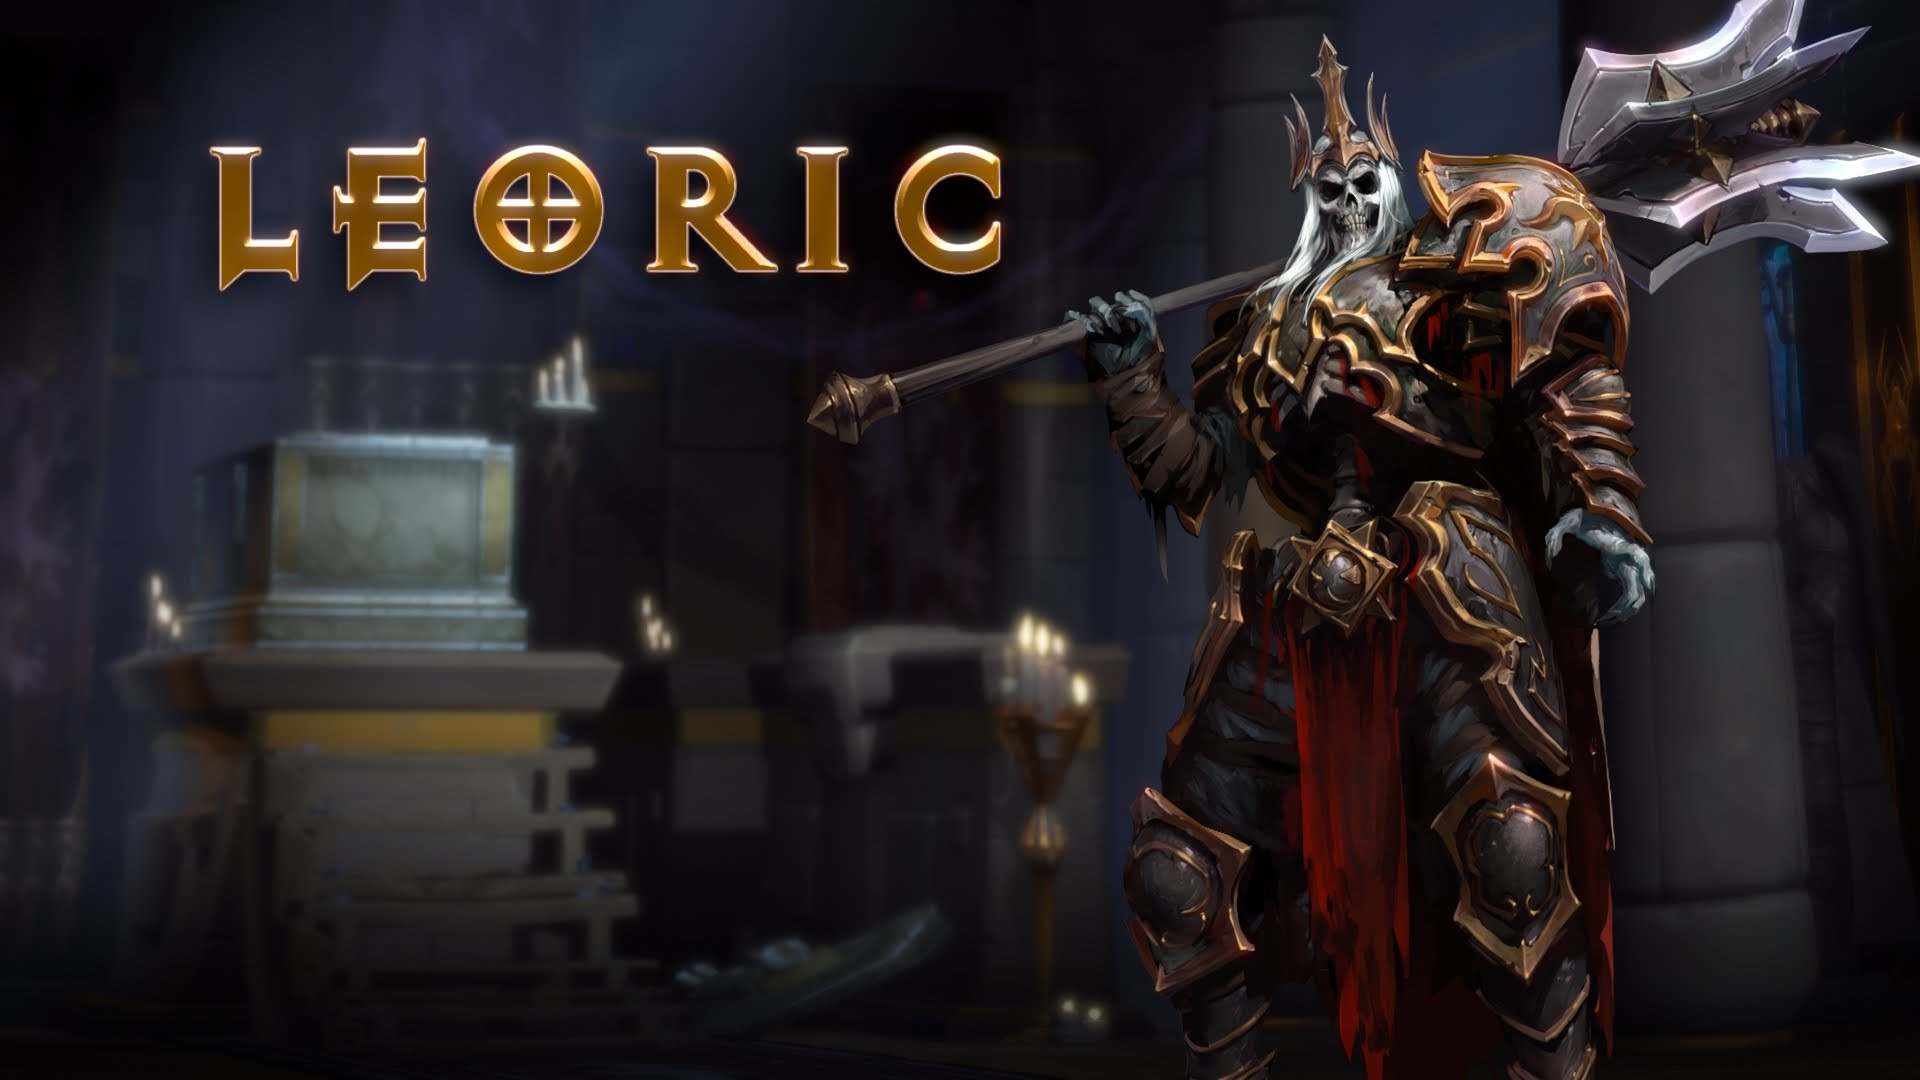 Leoric - Heroes of the Storm